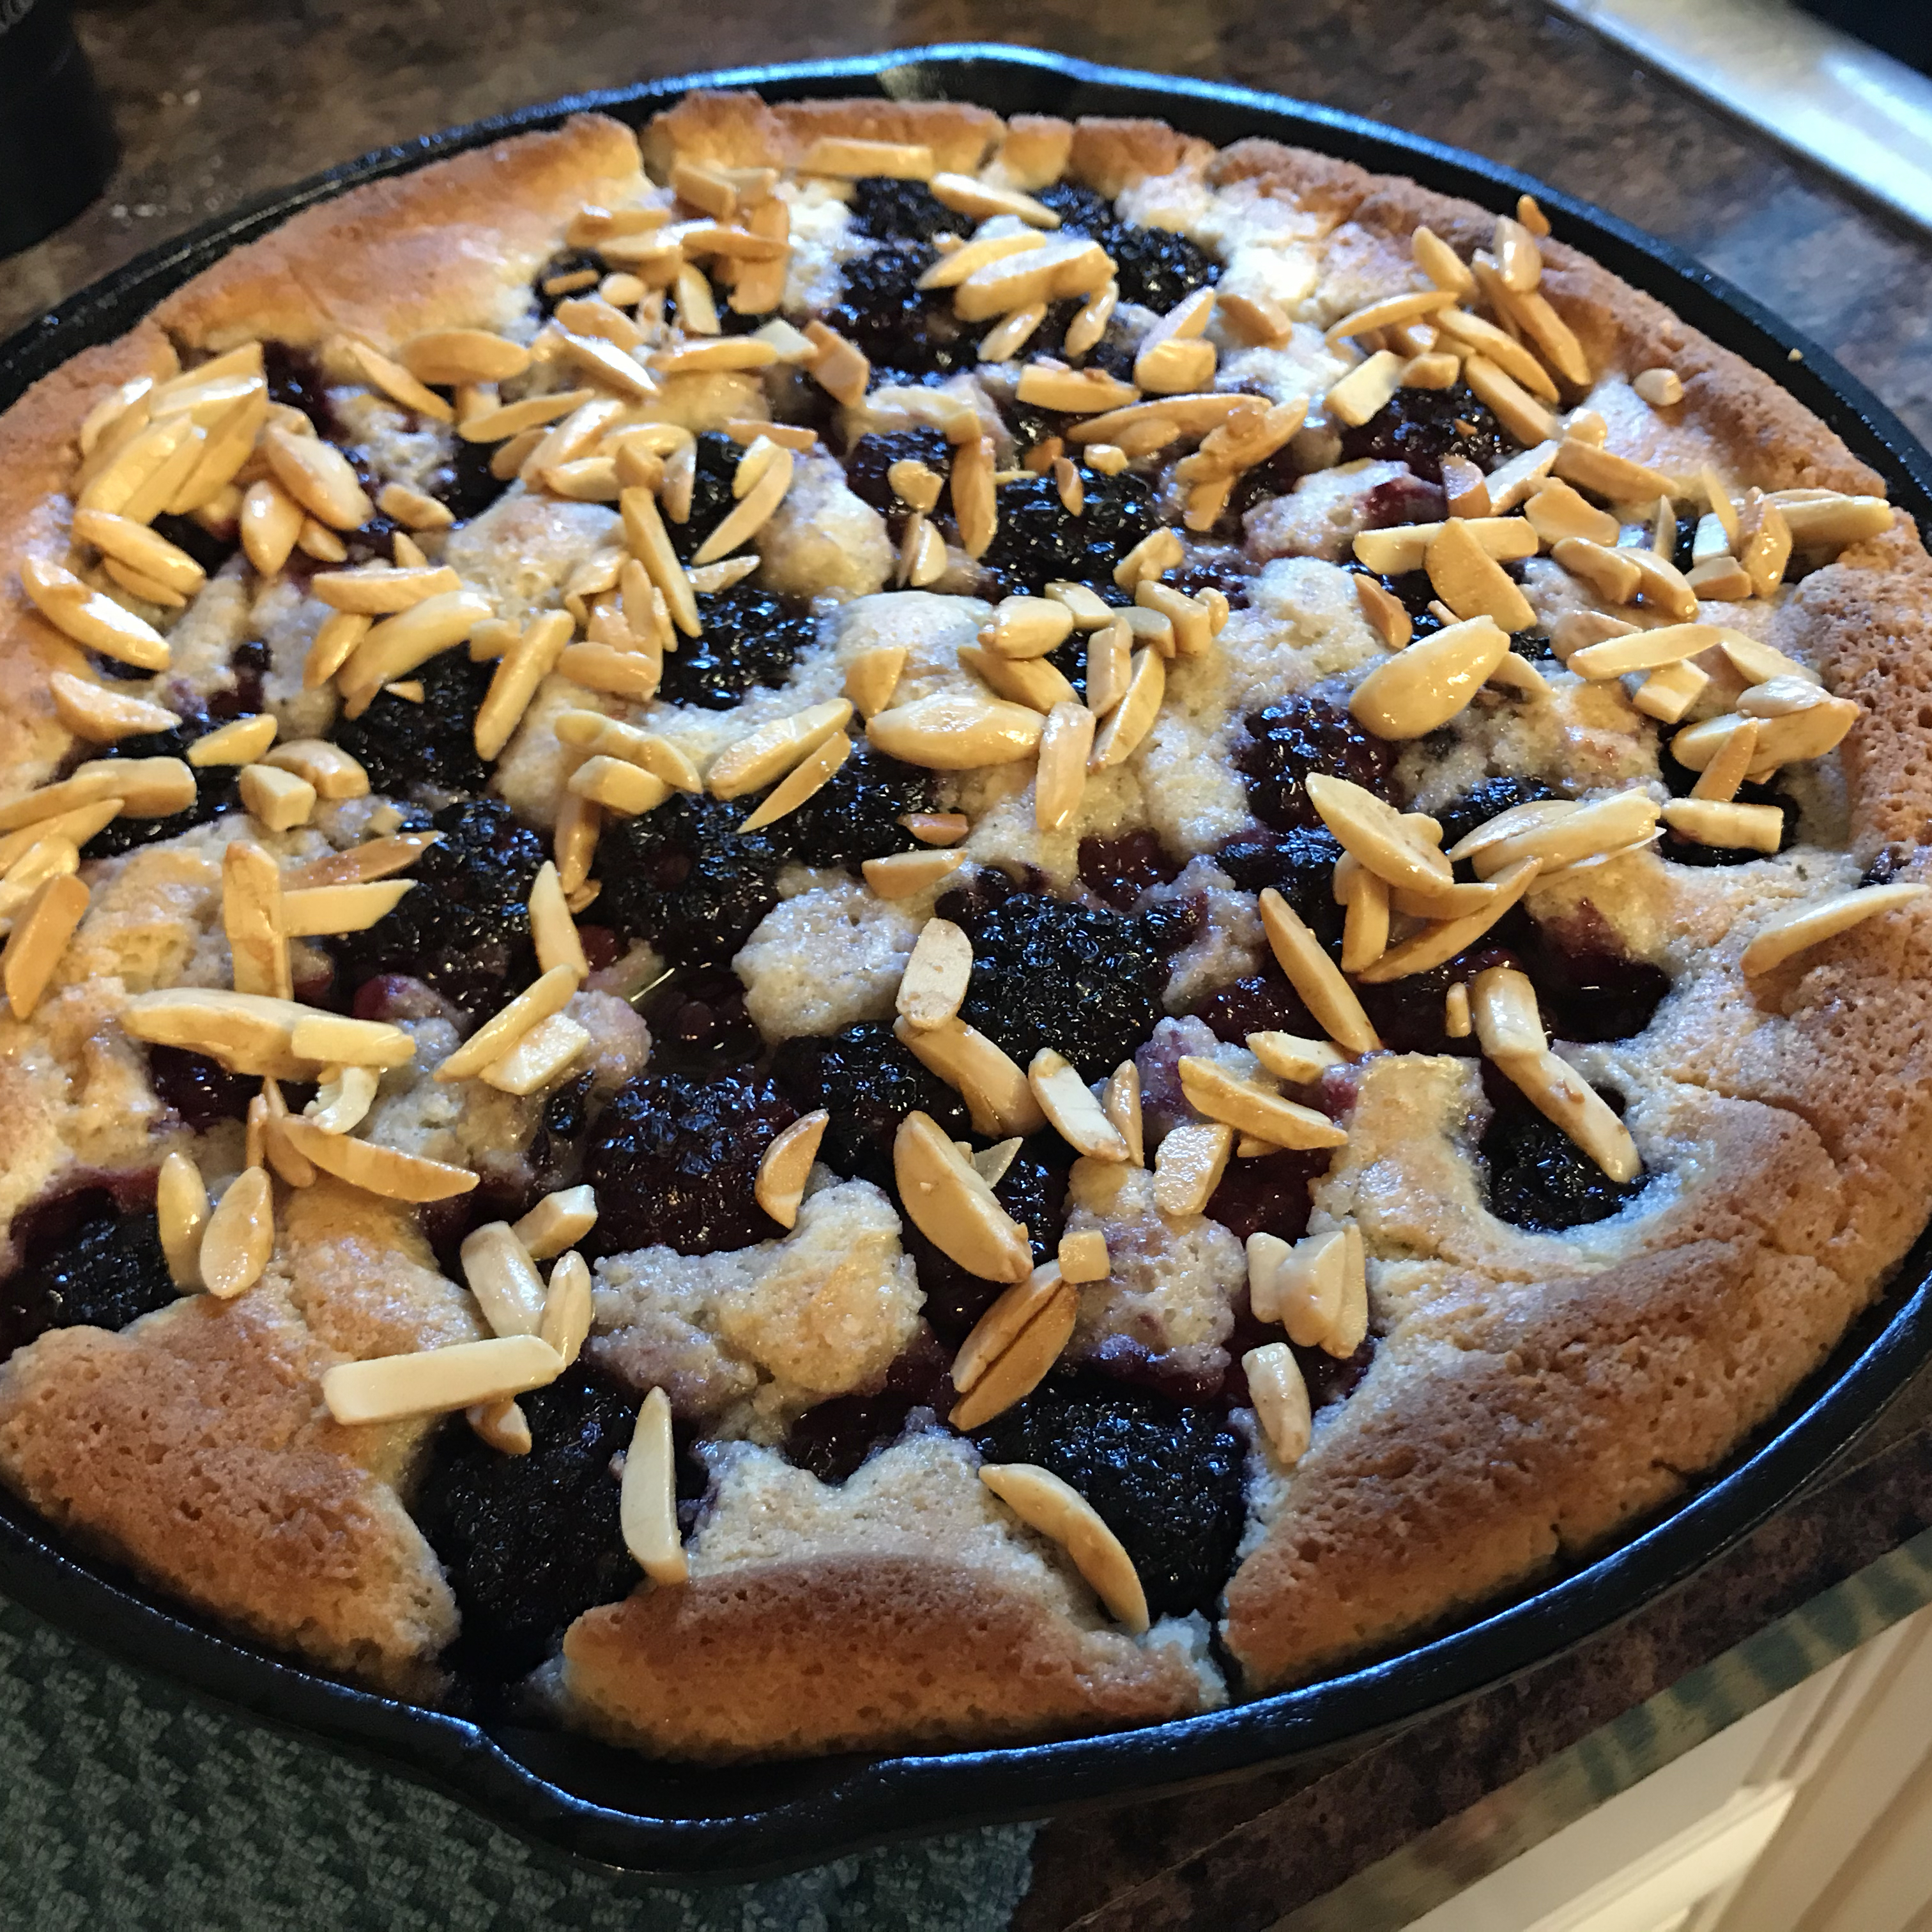 Chef John's Blackberry Buckle charger87